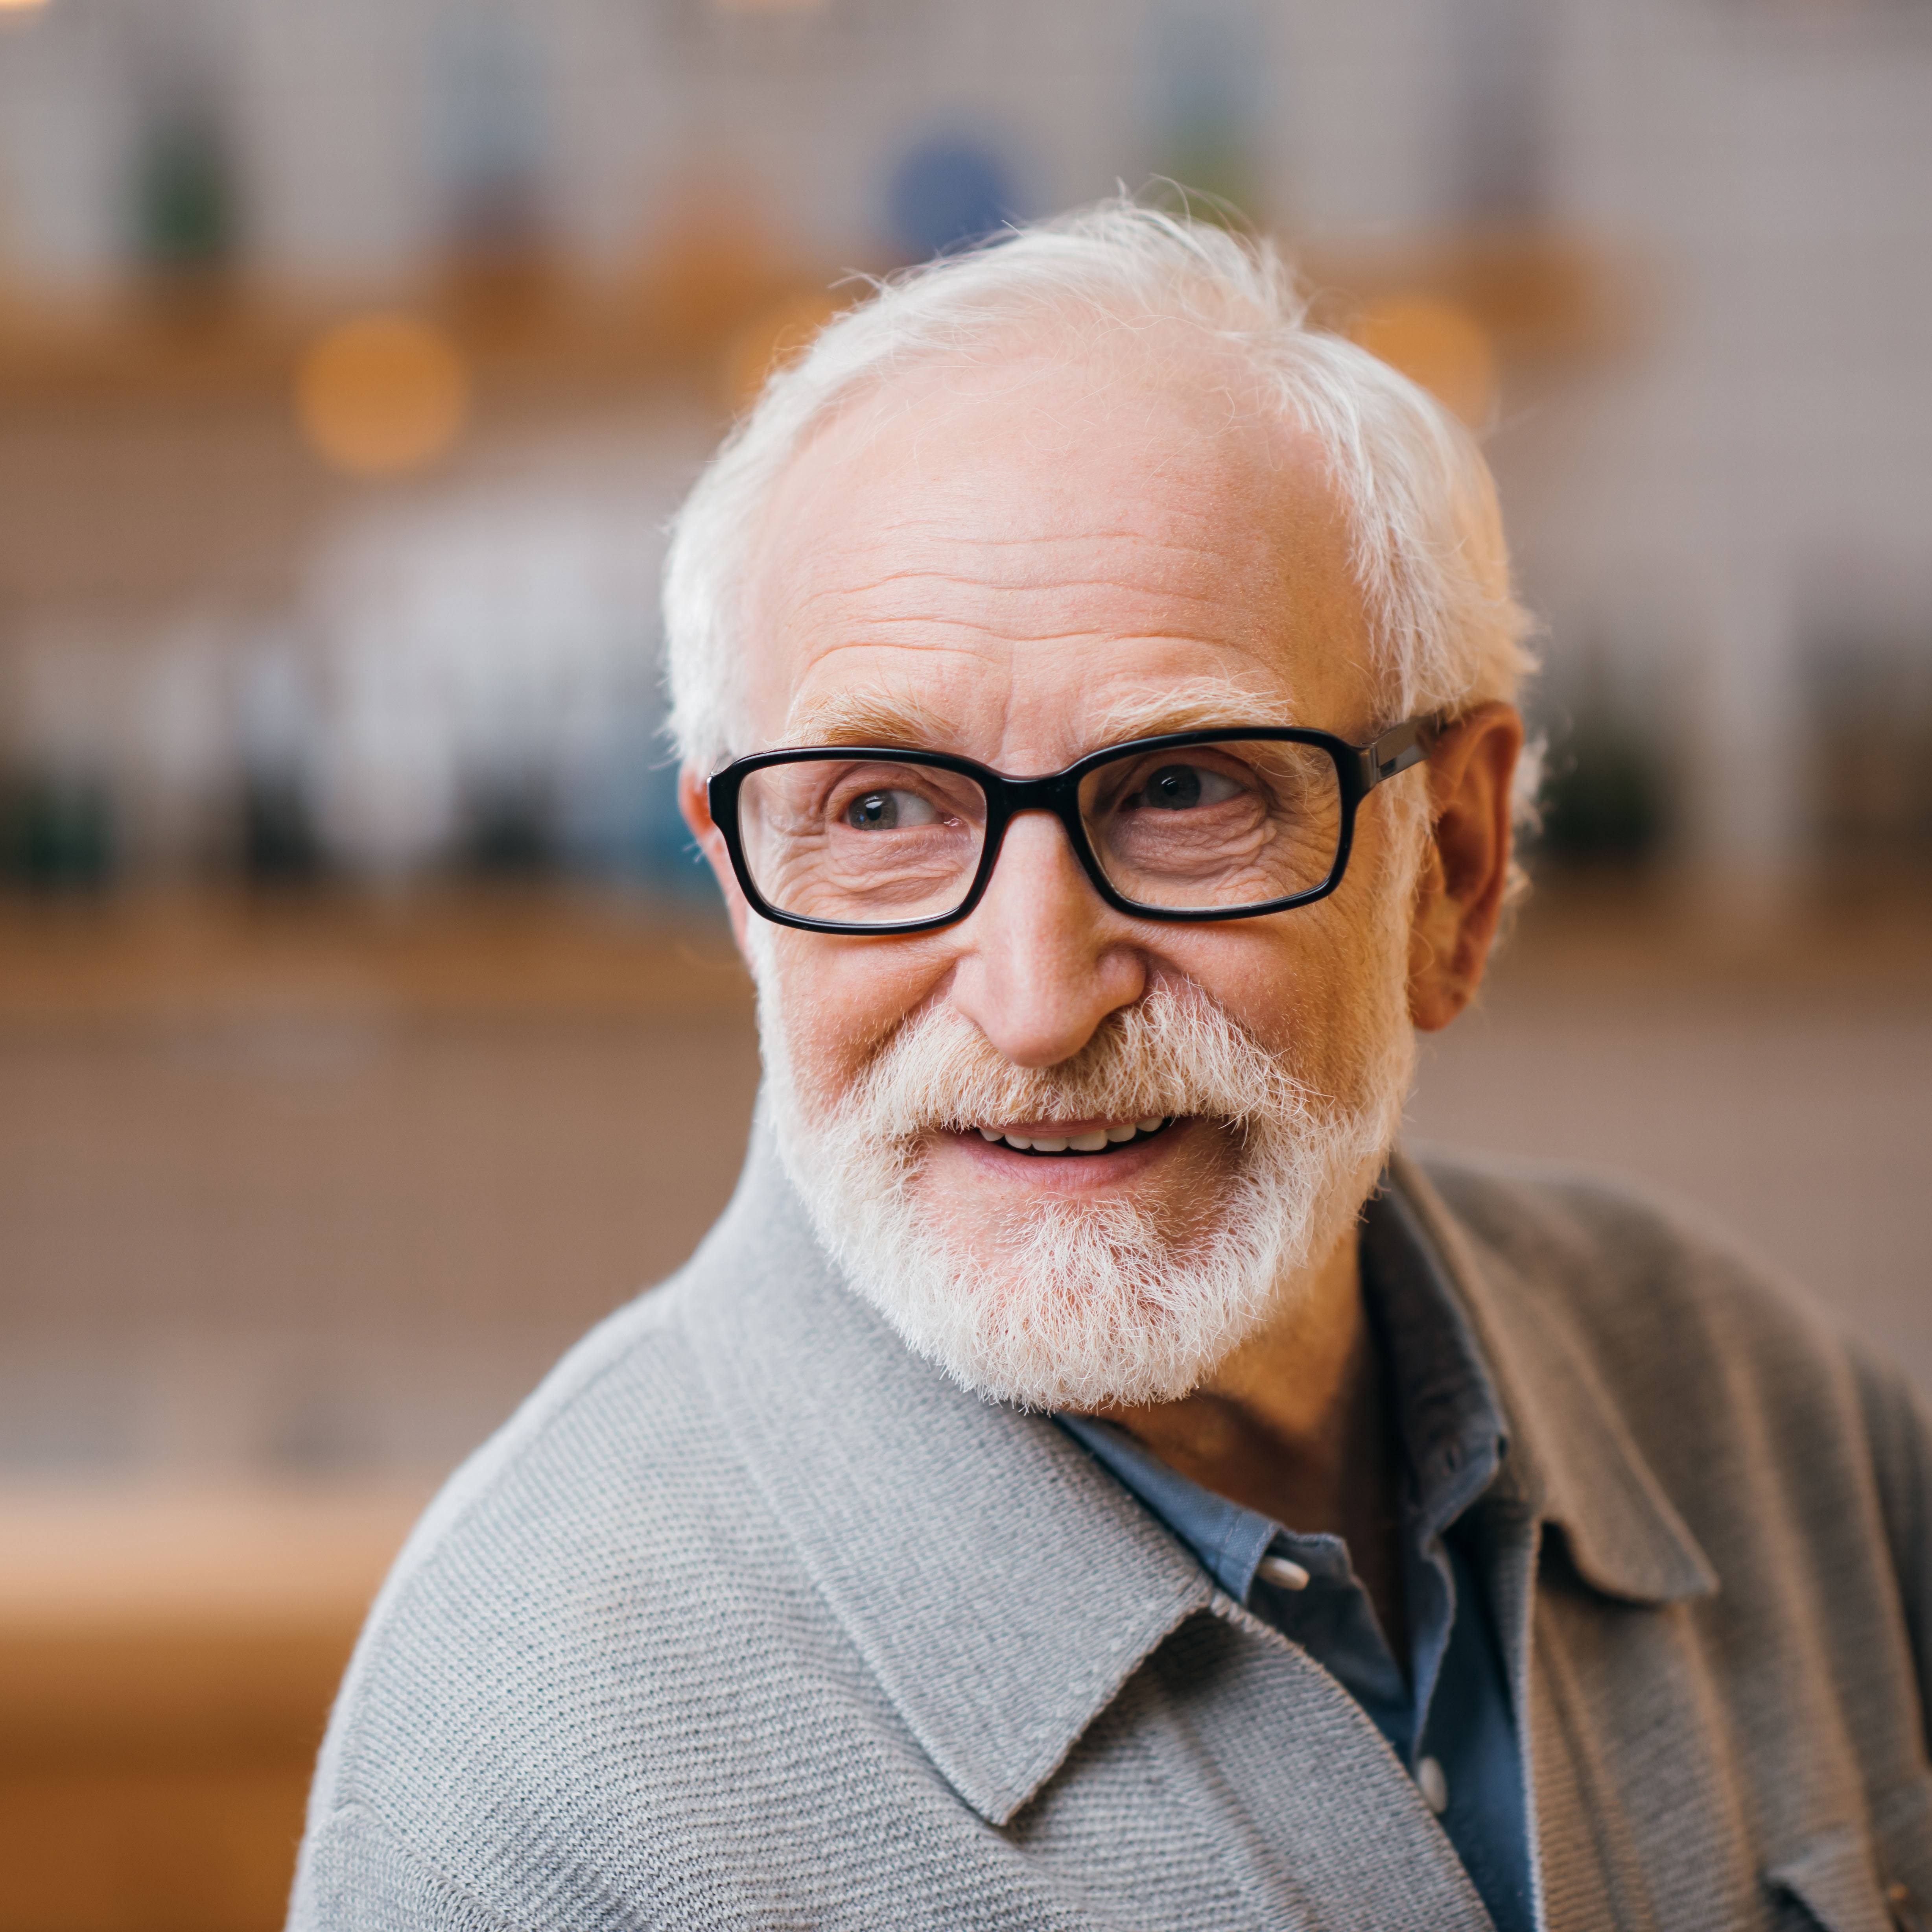 a close-up of a smiling elderly man, with white hair and a white beard, wearing glasses